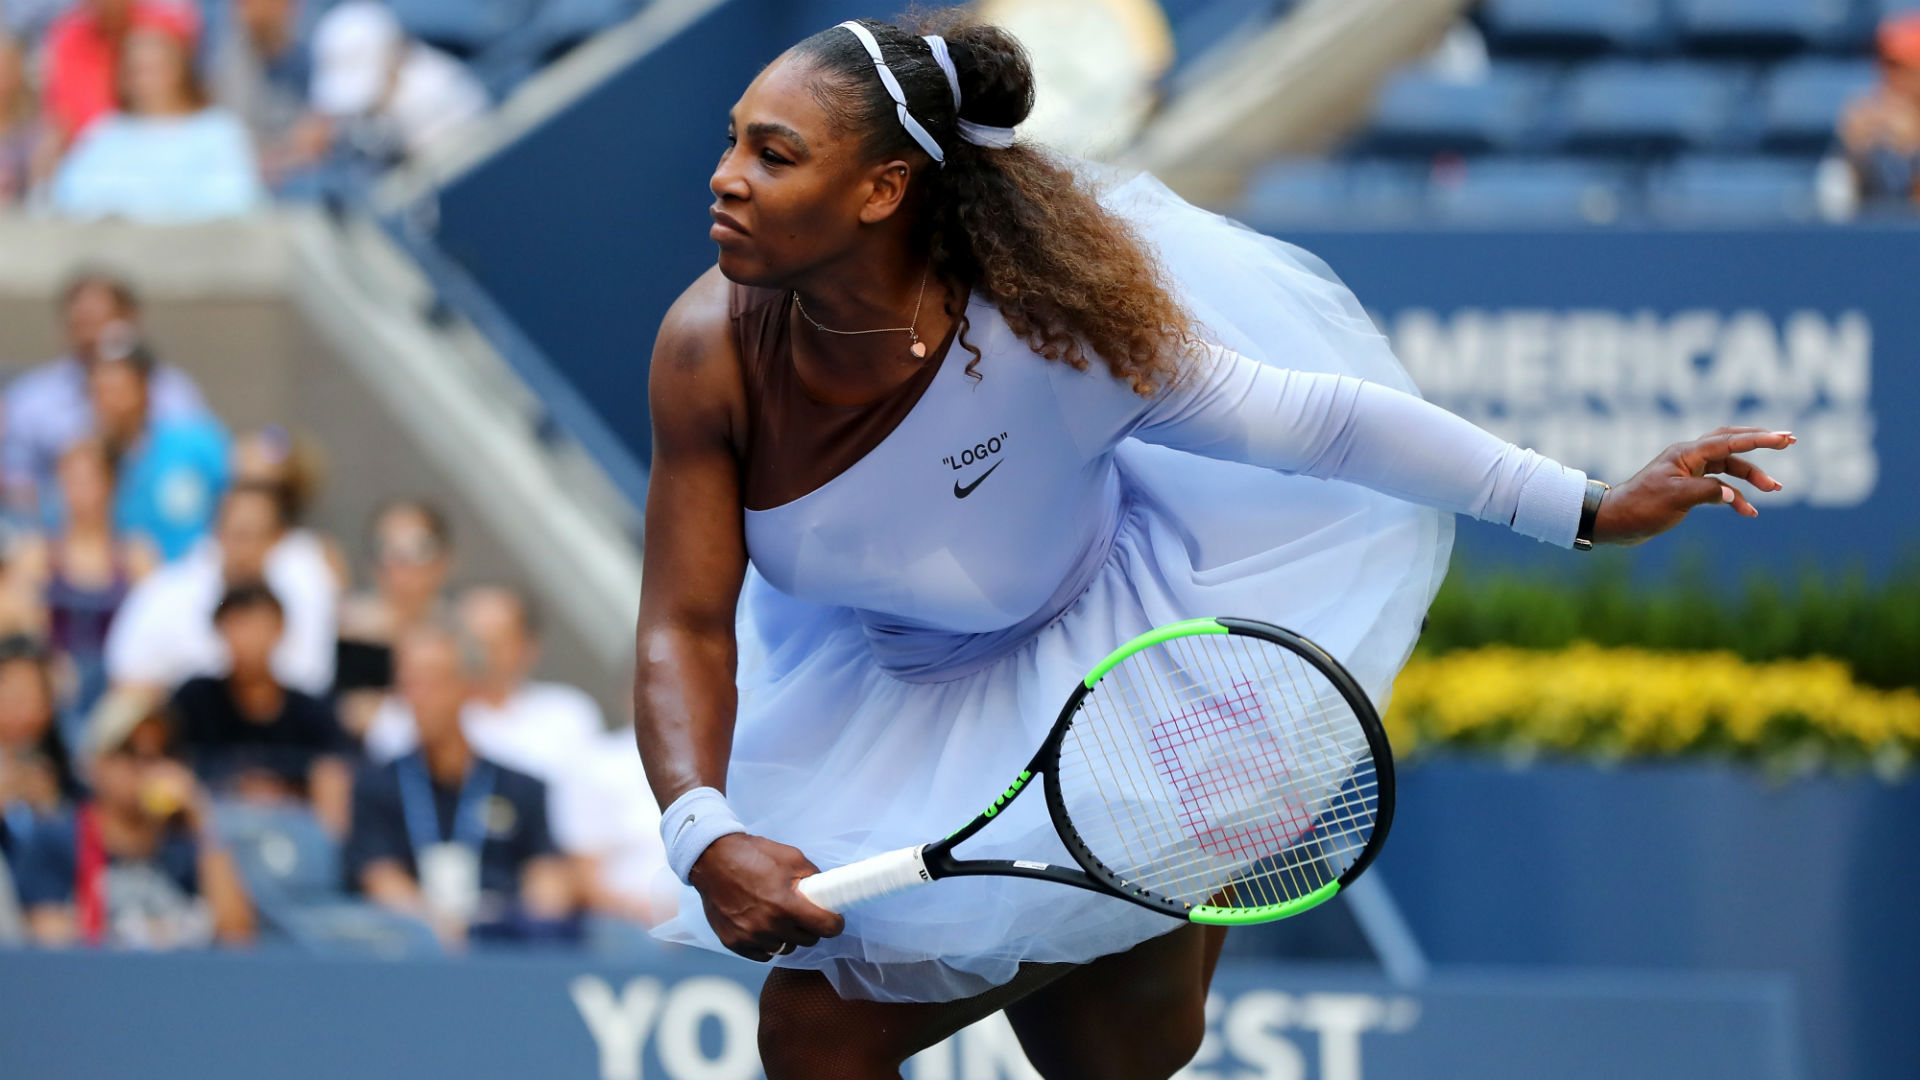 US Open 2018: Serena Williams comes through entertaining Kaia Kanepi clash to reach quarter ...